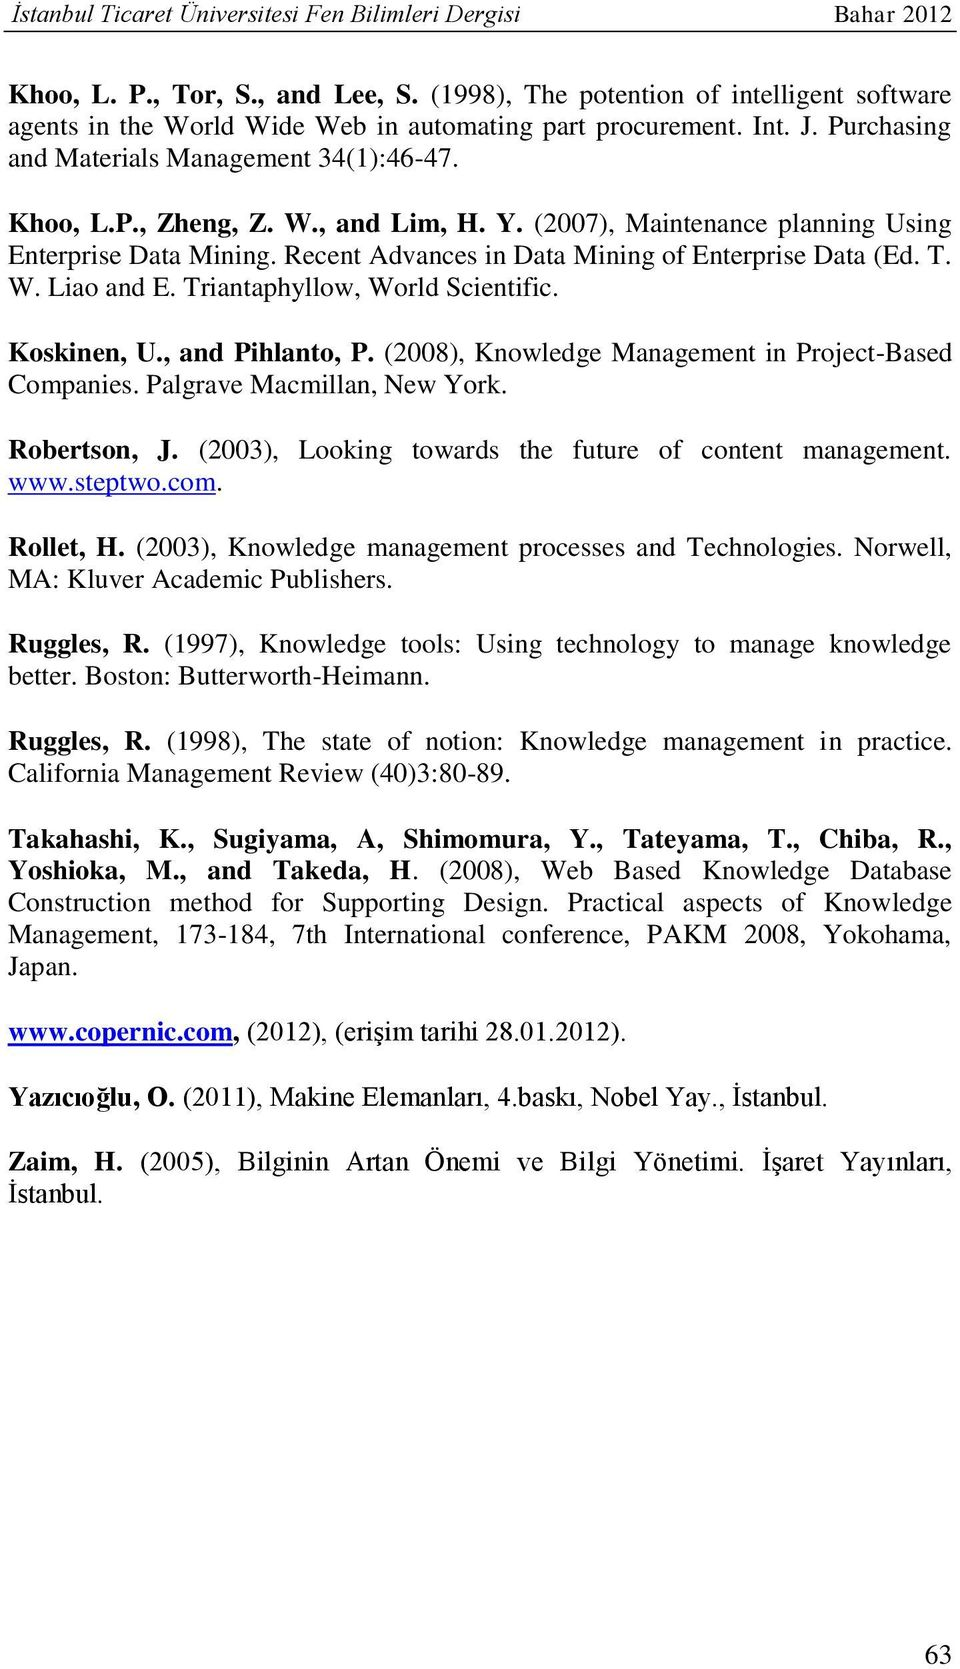 Y. (2007), Maintenance planning Using Enterprise Data Mining. Recent Advances in Data Mining of Enterprise Data (Ed. T. W. Liao and E. Triantaphyllow, World Scientific. Koskinen, U., and Pihlanto, P.